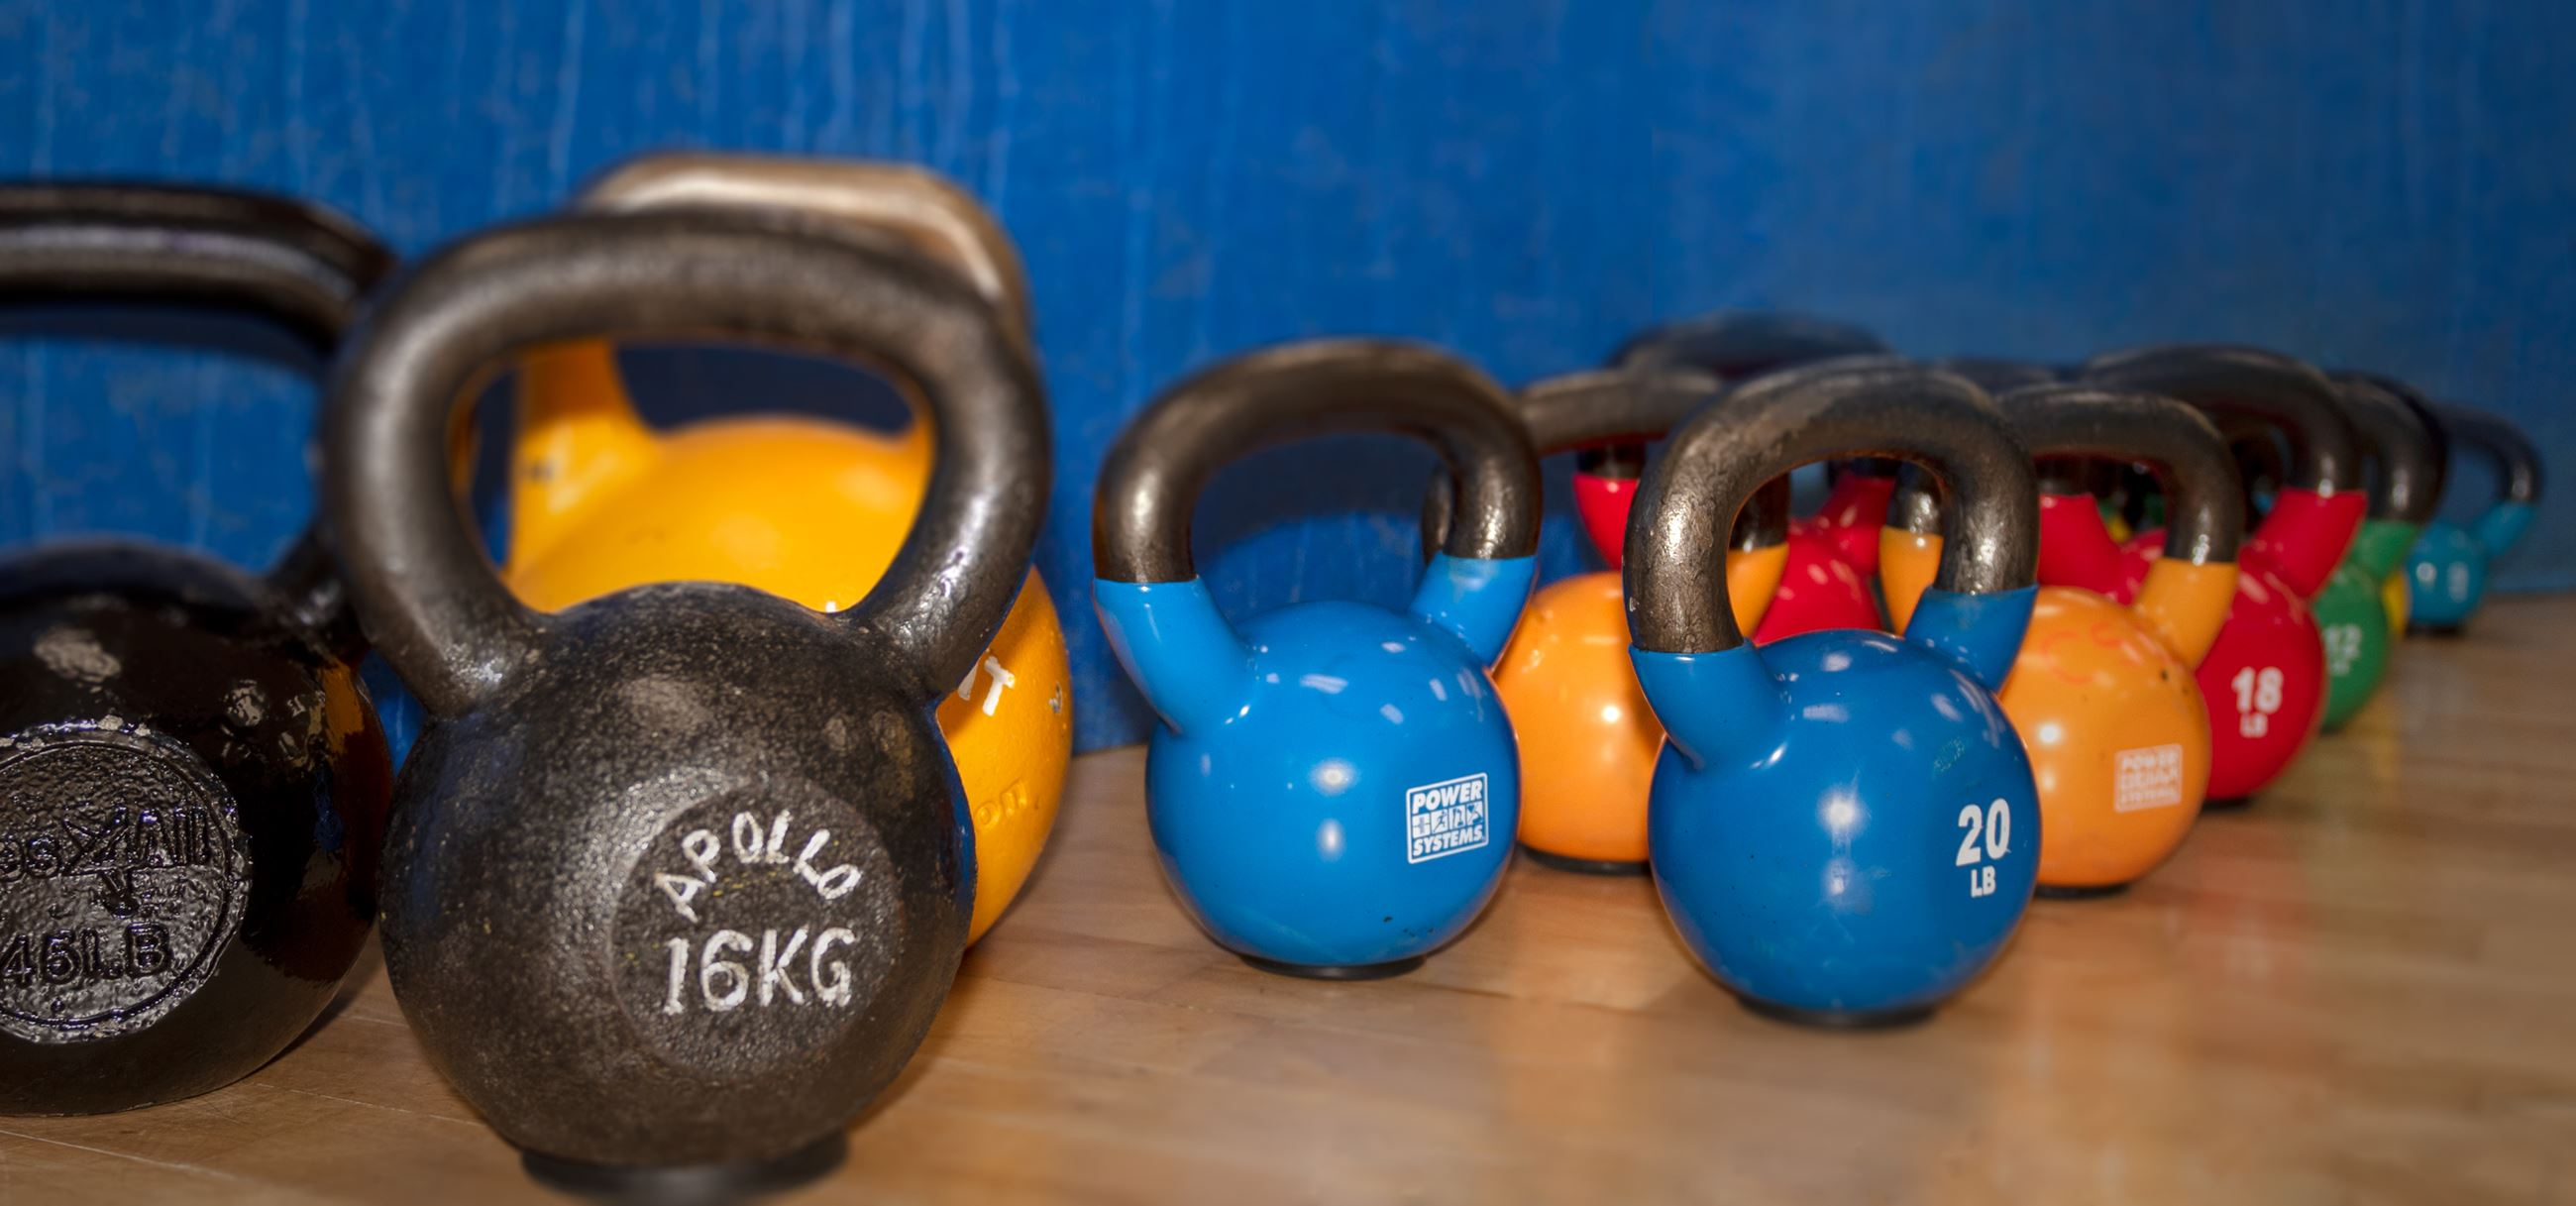 Fitness Room Kettlebells arranged by weight